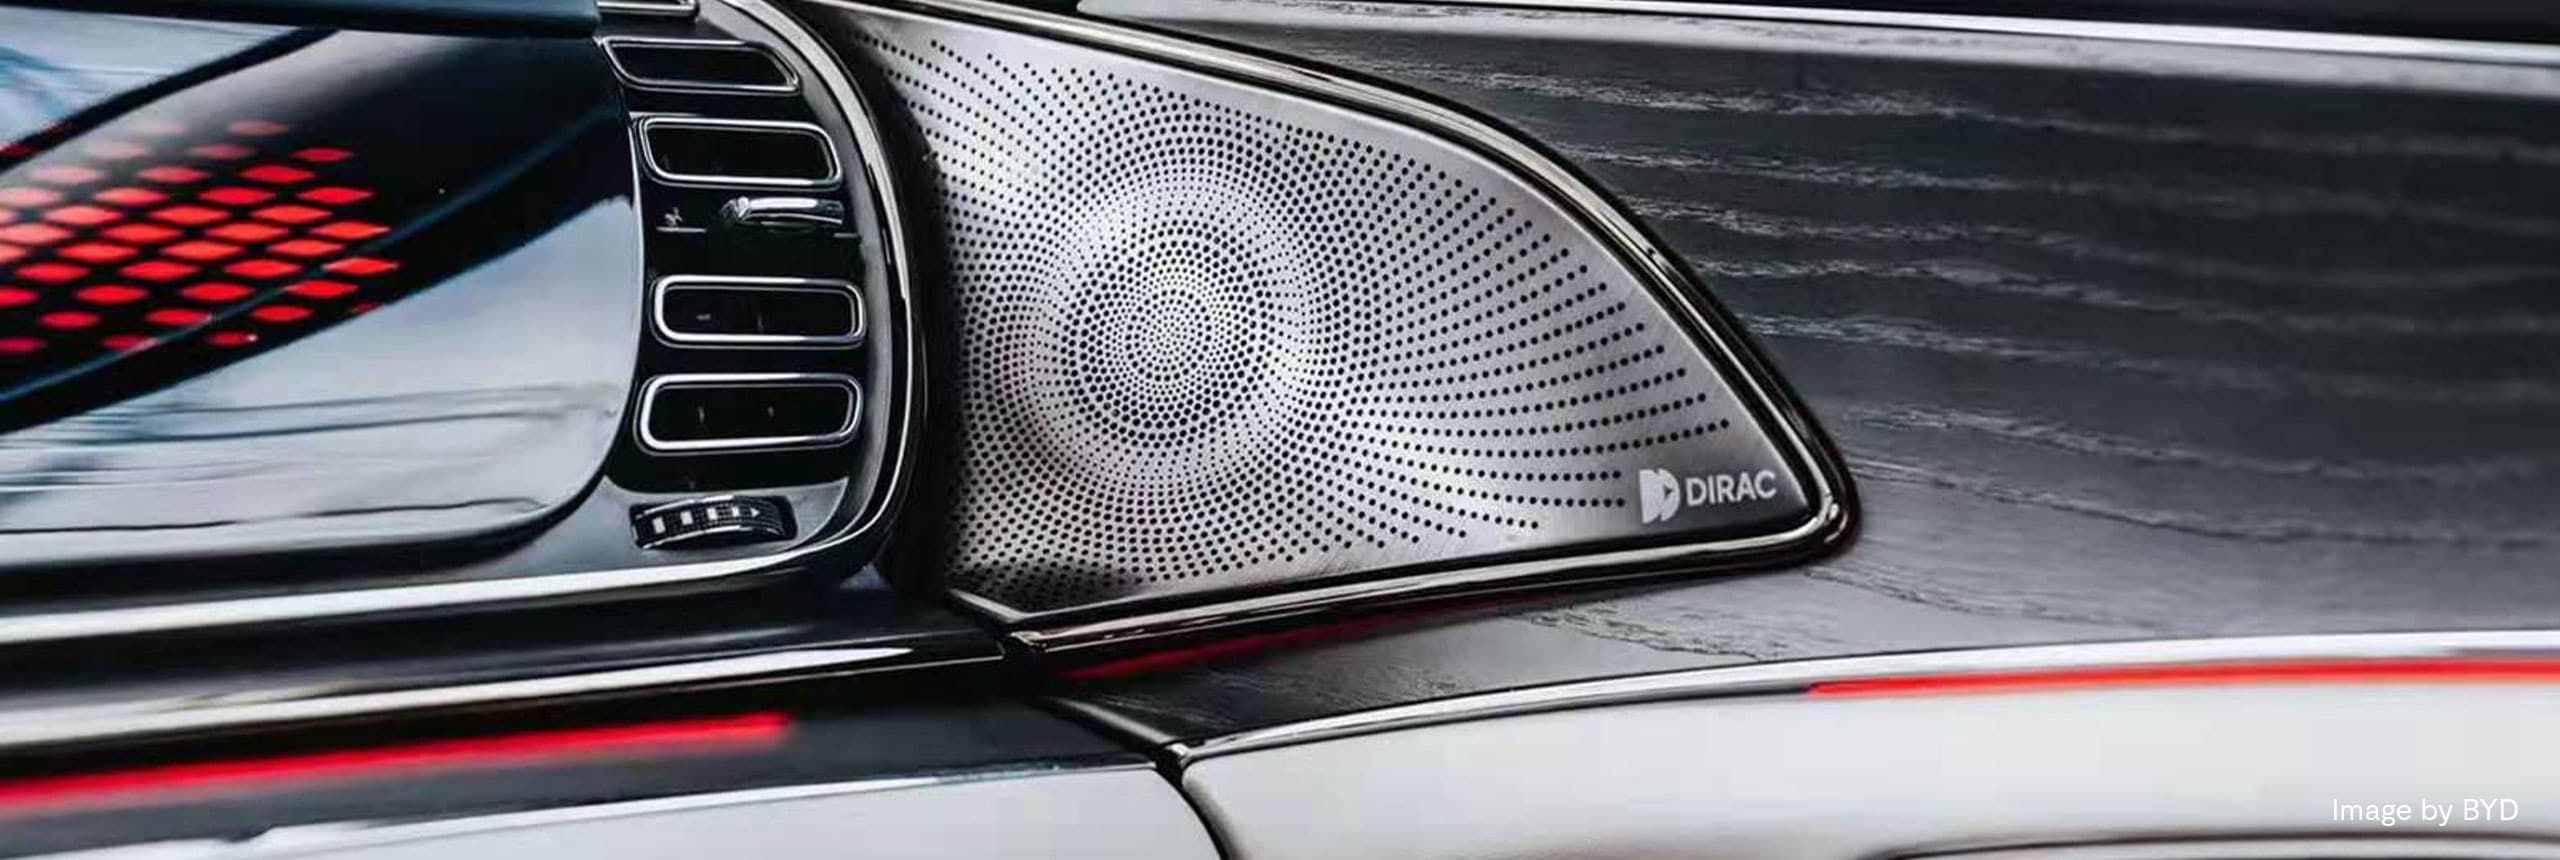 Automotive Dirac audio, Image by BYD